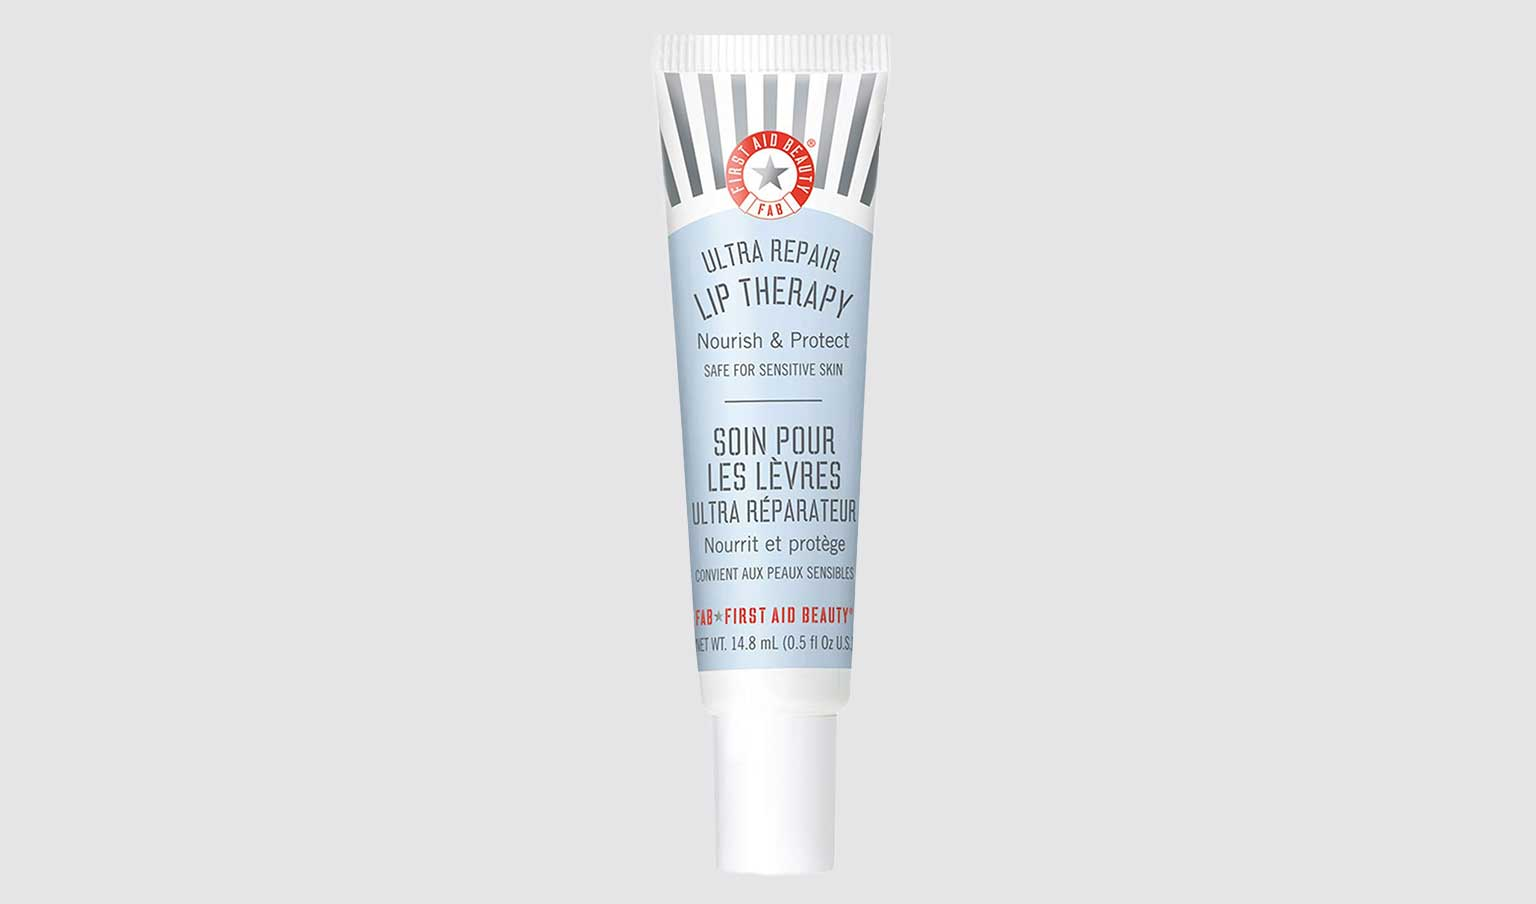 A tube of First Aid Beauty displayed on a light background